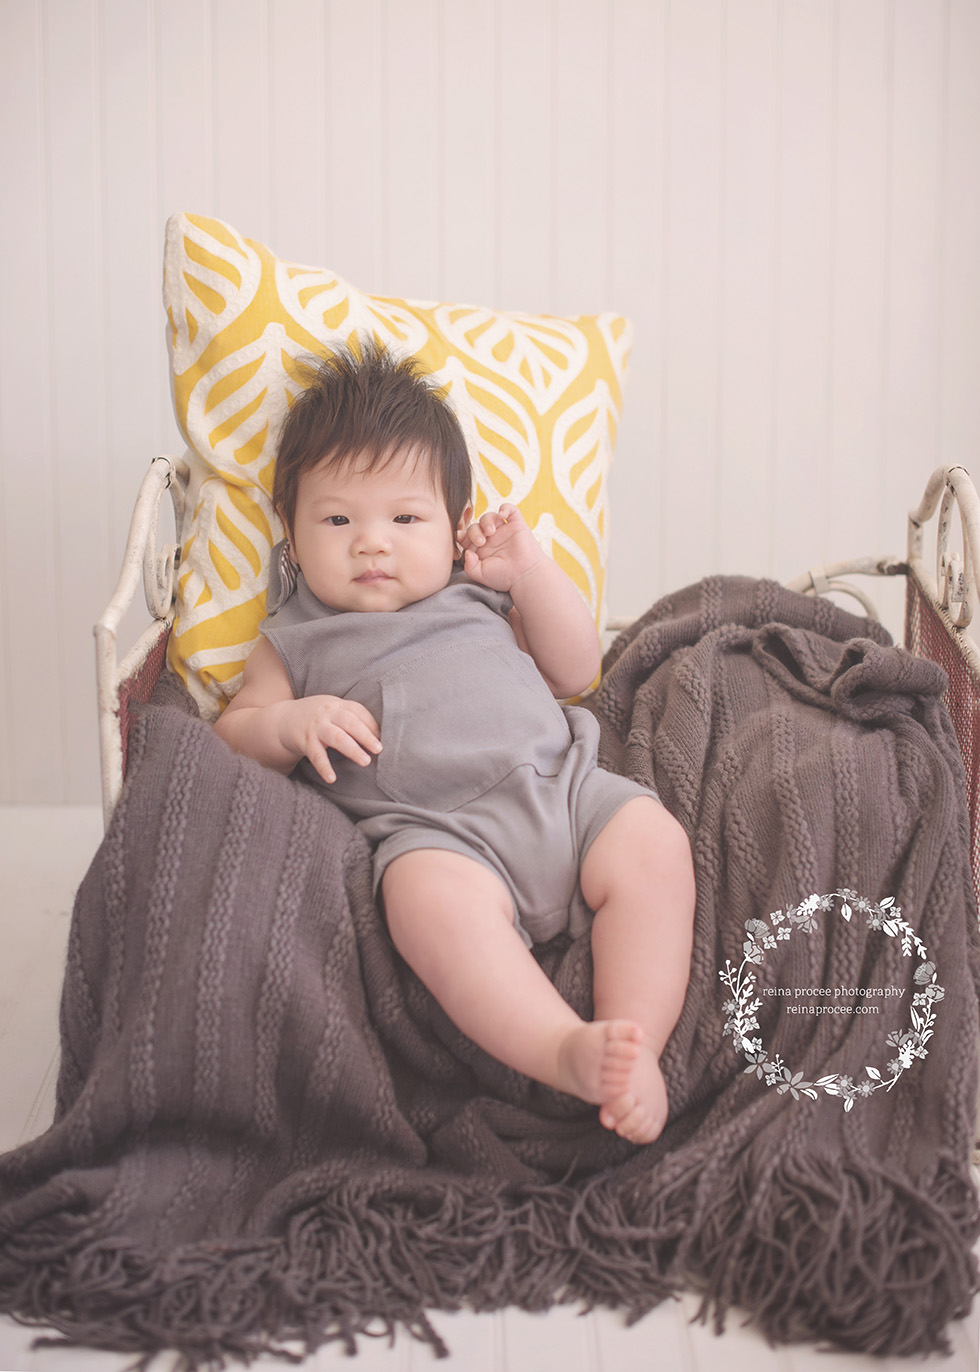 baby boy sitting on bed with grey blanket yellow pillow